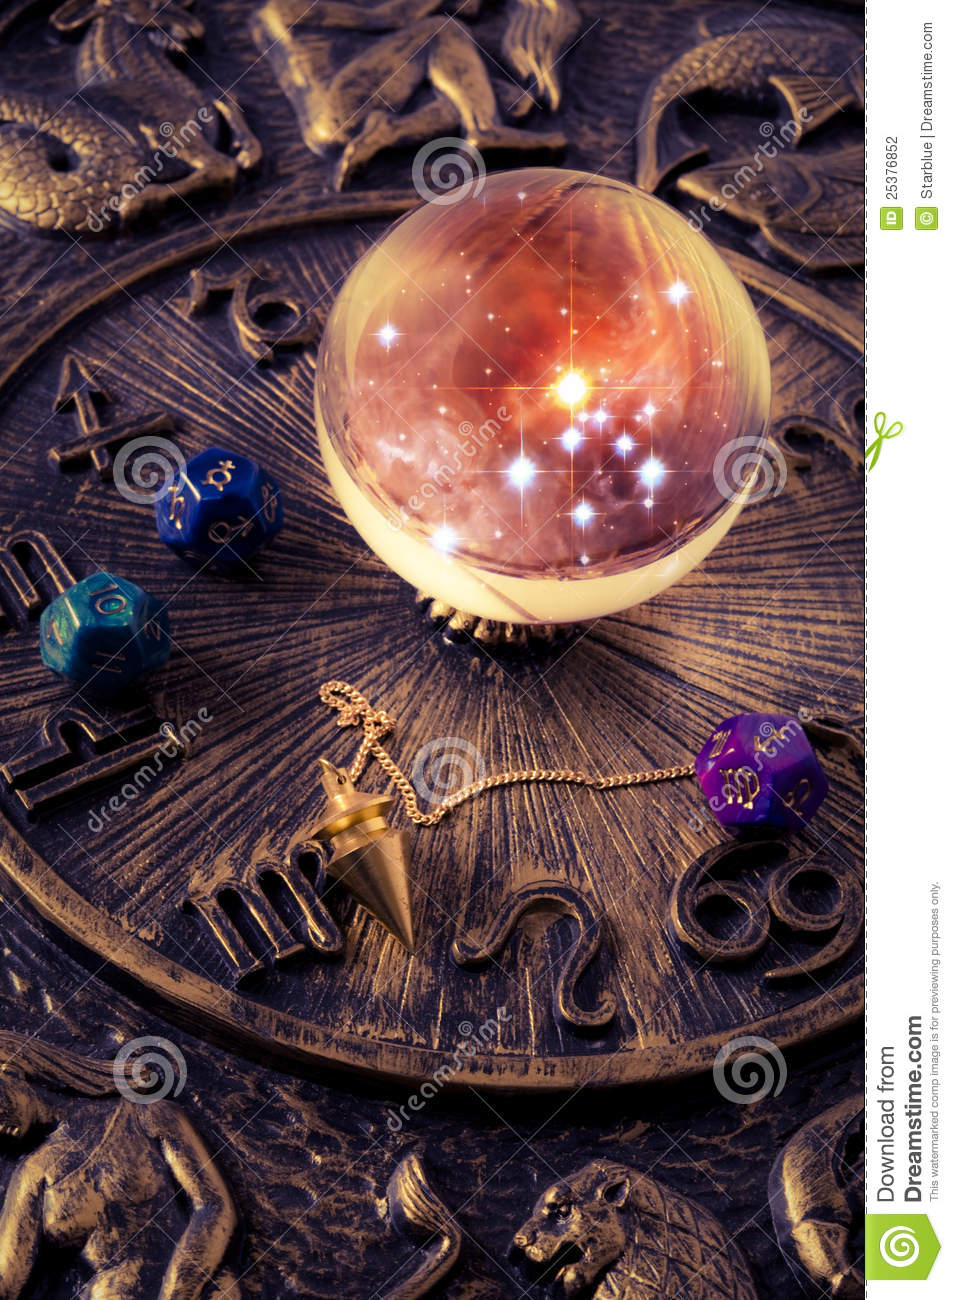 Astrology prediction of the daughters